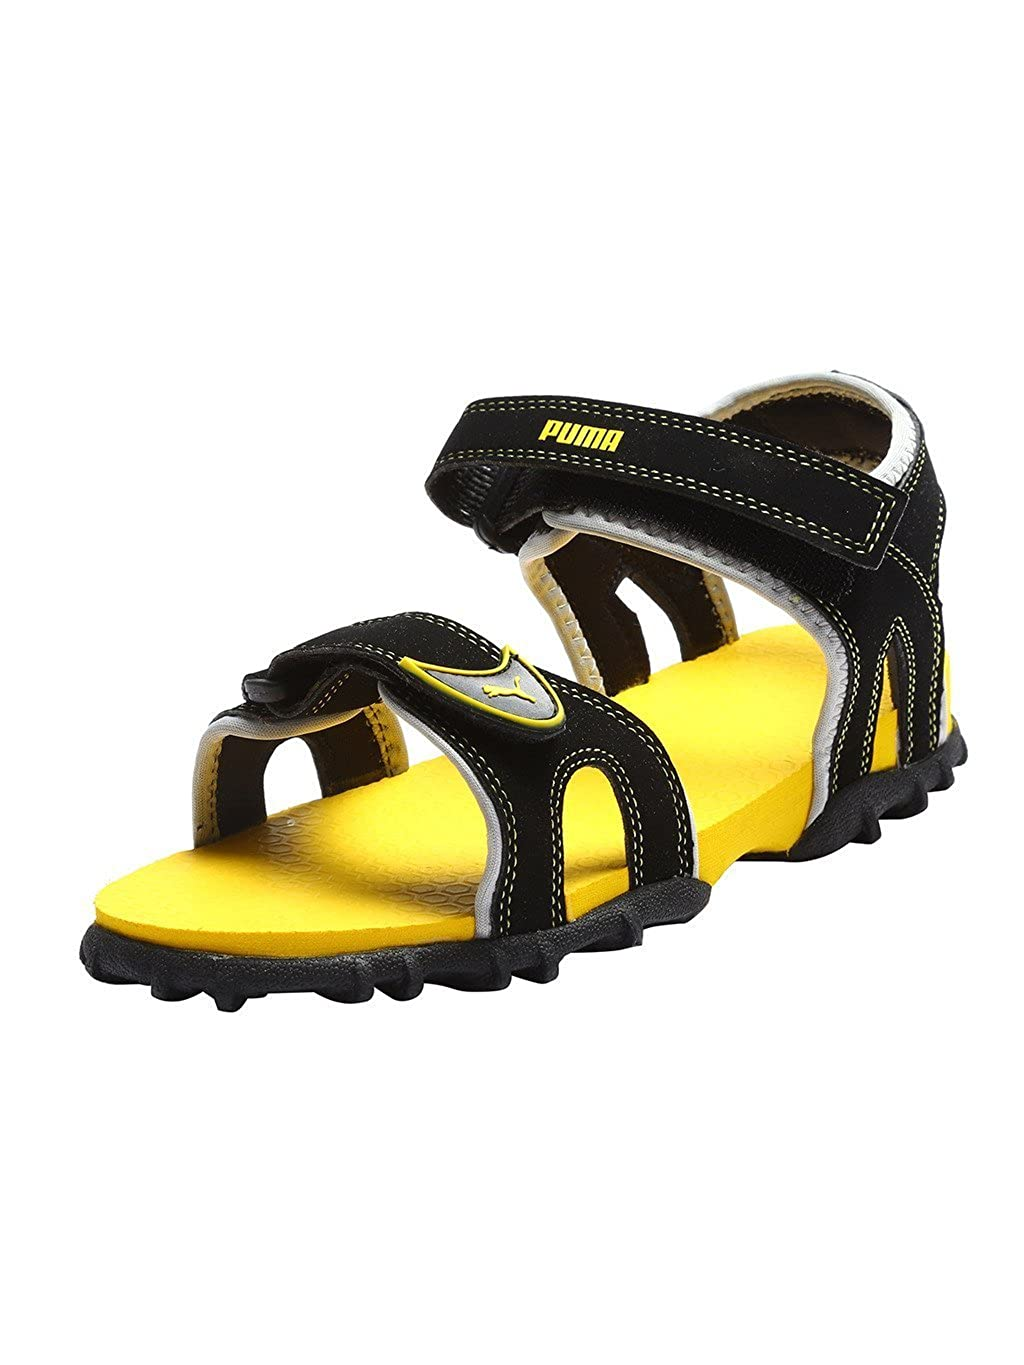 Buy Puma Unisex Sandals and Floaters at